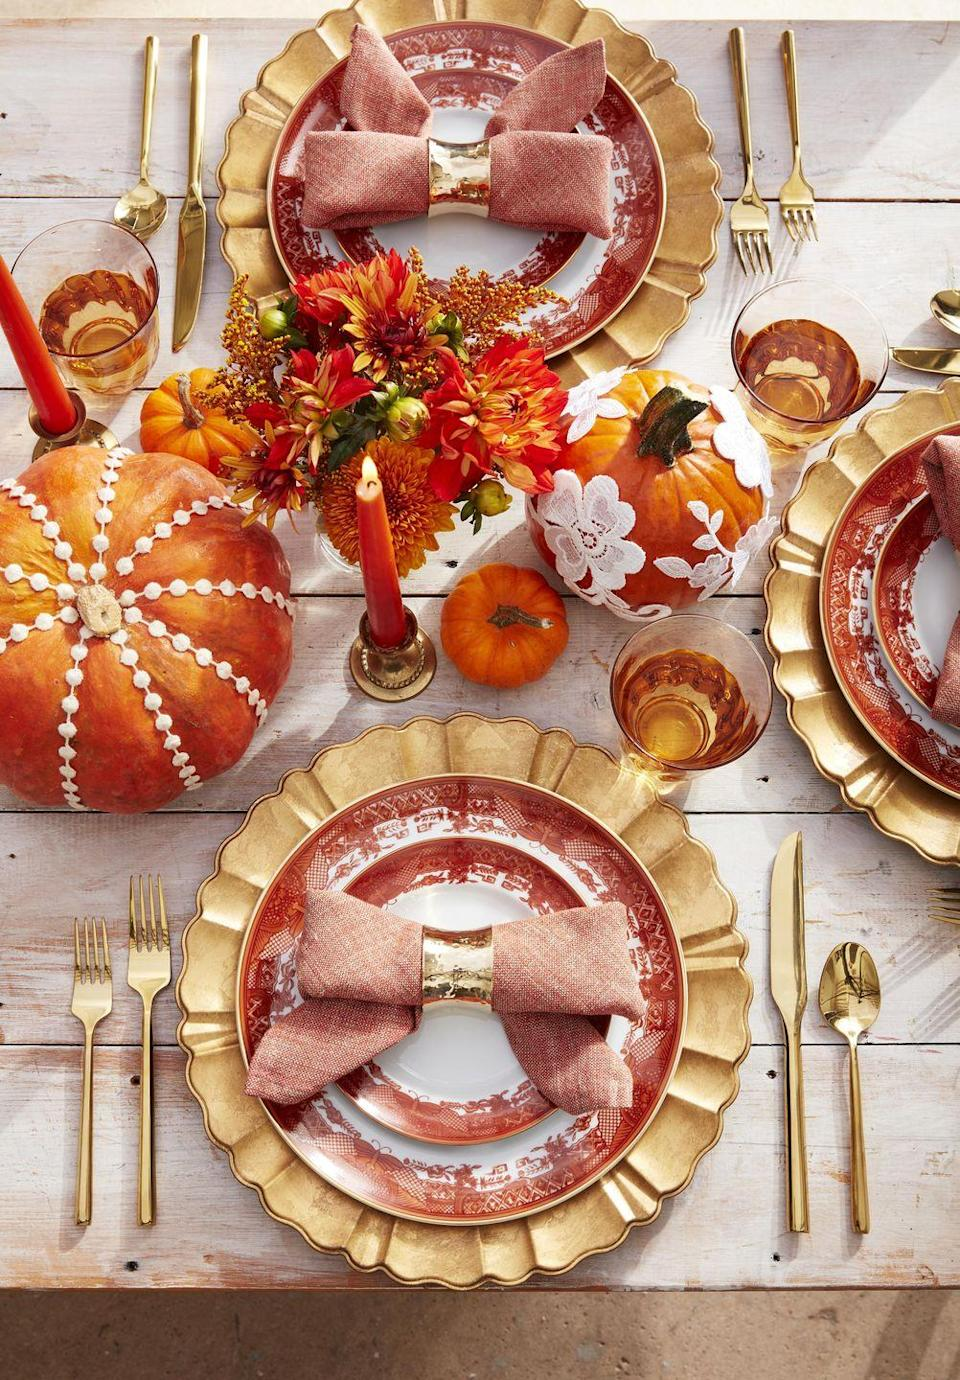 """<p>Not just for wedding dresses! Hot glue lace and sewing trim on orange pumpkins and sprinkle them down the center of the table. Orange flower and bittersweet add a soft touch. Bonus: Form napkins into a bow shape and slip a gold napkin ring over the center. </p><p><a class=""""link rapid-noclick-resp"""" href=""""https://www.amazon.com/ilauke-Ribbon-Assorted-Pattern-Sewing/dp/B07TVNYD4G/ref=sr_1_1?dchild=1&keywords=lace&qid=1629988423&sr=8-1&tag=syn-yahoo-20&ascsubtag=%5Bartid%7C10050.g.2130%5Bsrc%7Cyahoo-us"""" rel=""""nofollow noopener"""" target=""""_blank"""" data-ylk=""""slk:SHOP LACE"""">SHOP LACE</a></p>"""